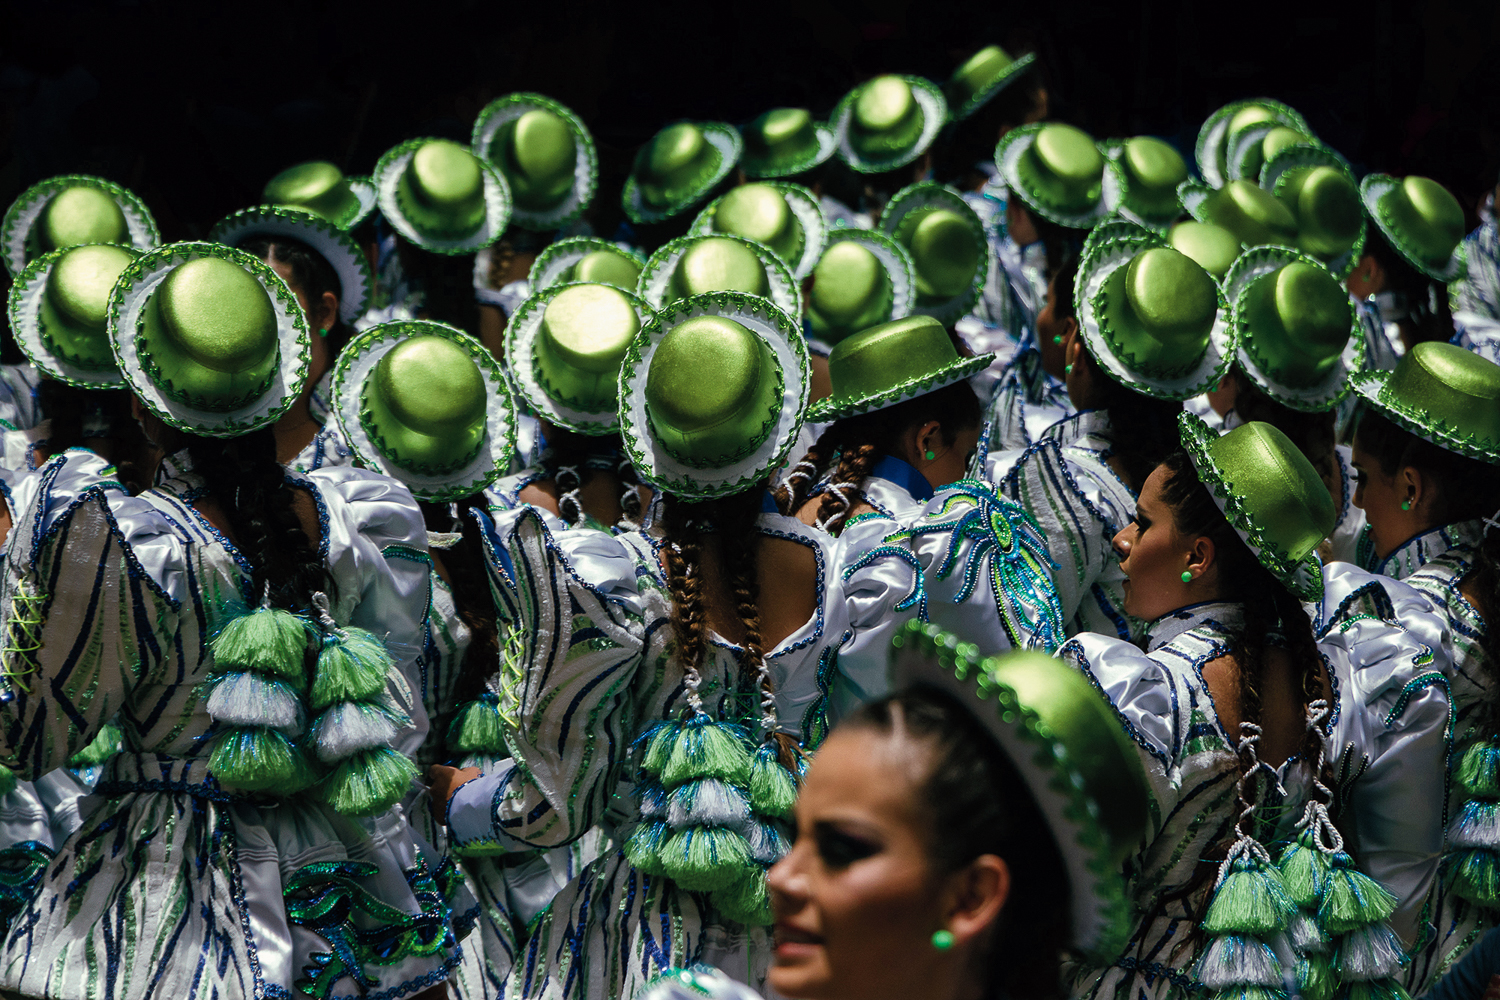 Photograph of Caporales at Carnaval de Oruro, wearing shiny green hats.